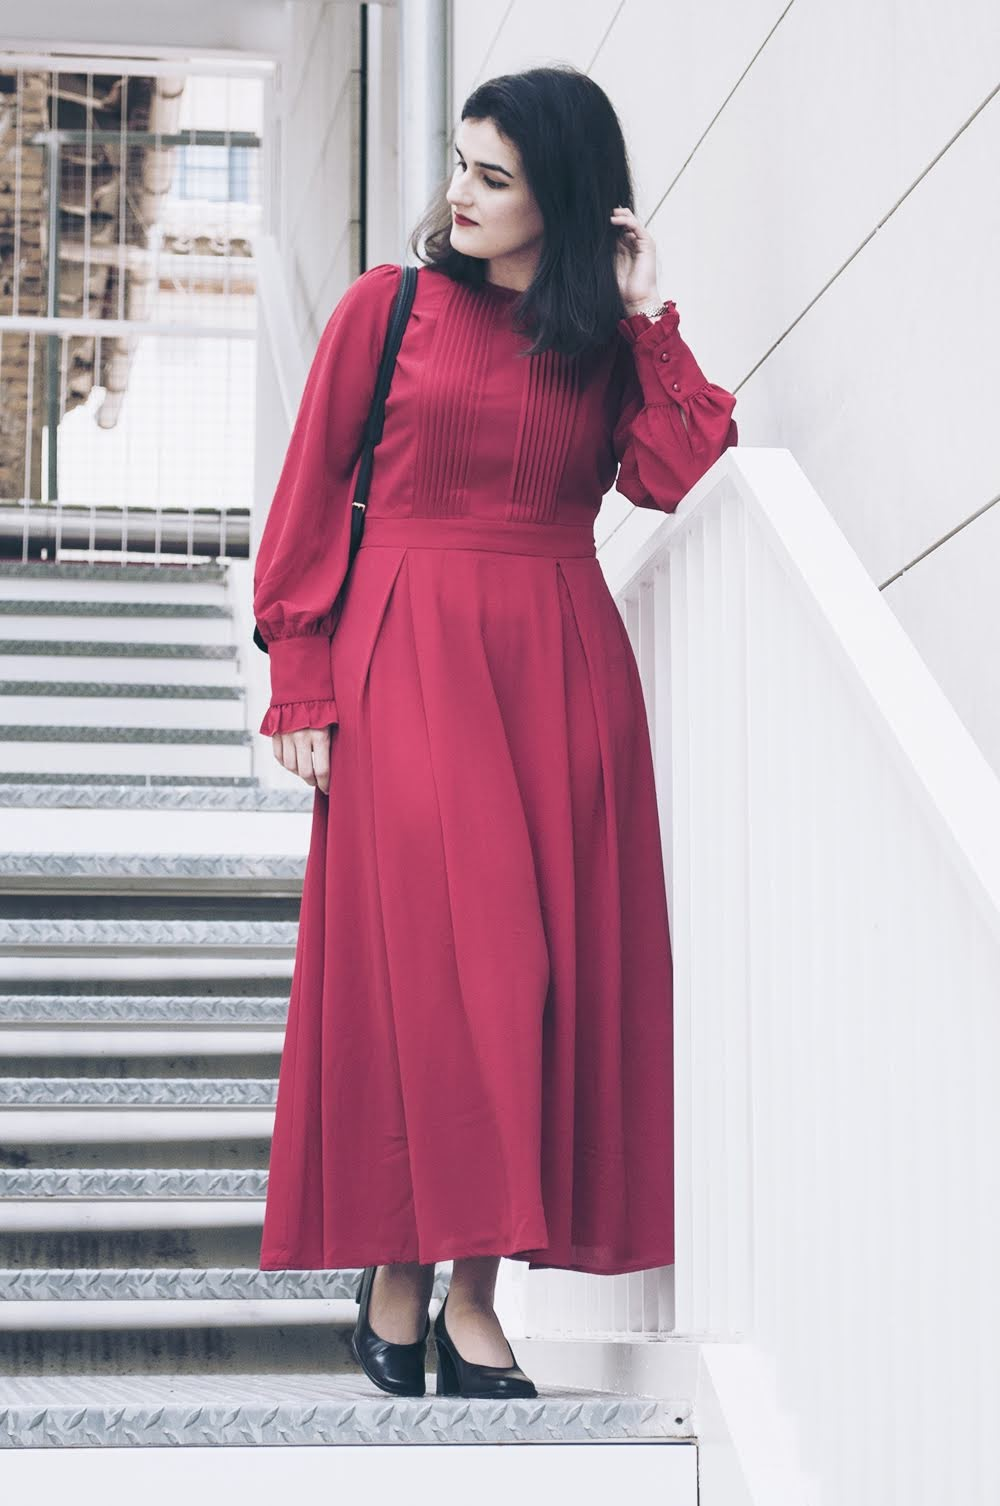 somethingfashion valenciablogger spain collaboration fashionblogger shein amanda ramón longdresses outfit idea ootd_0087